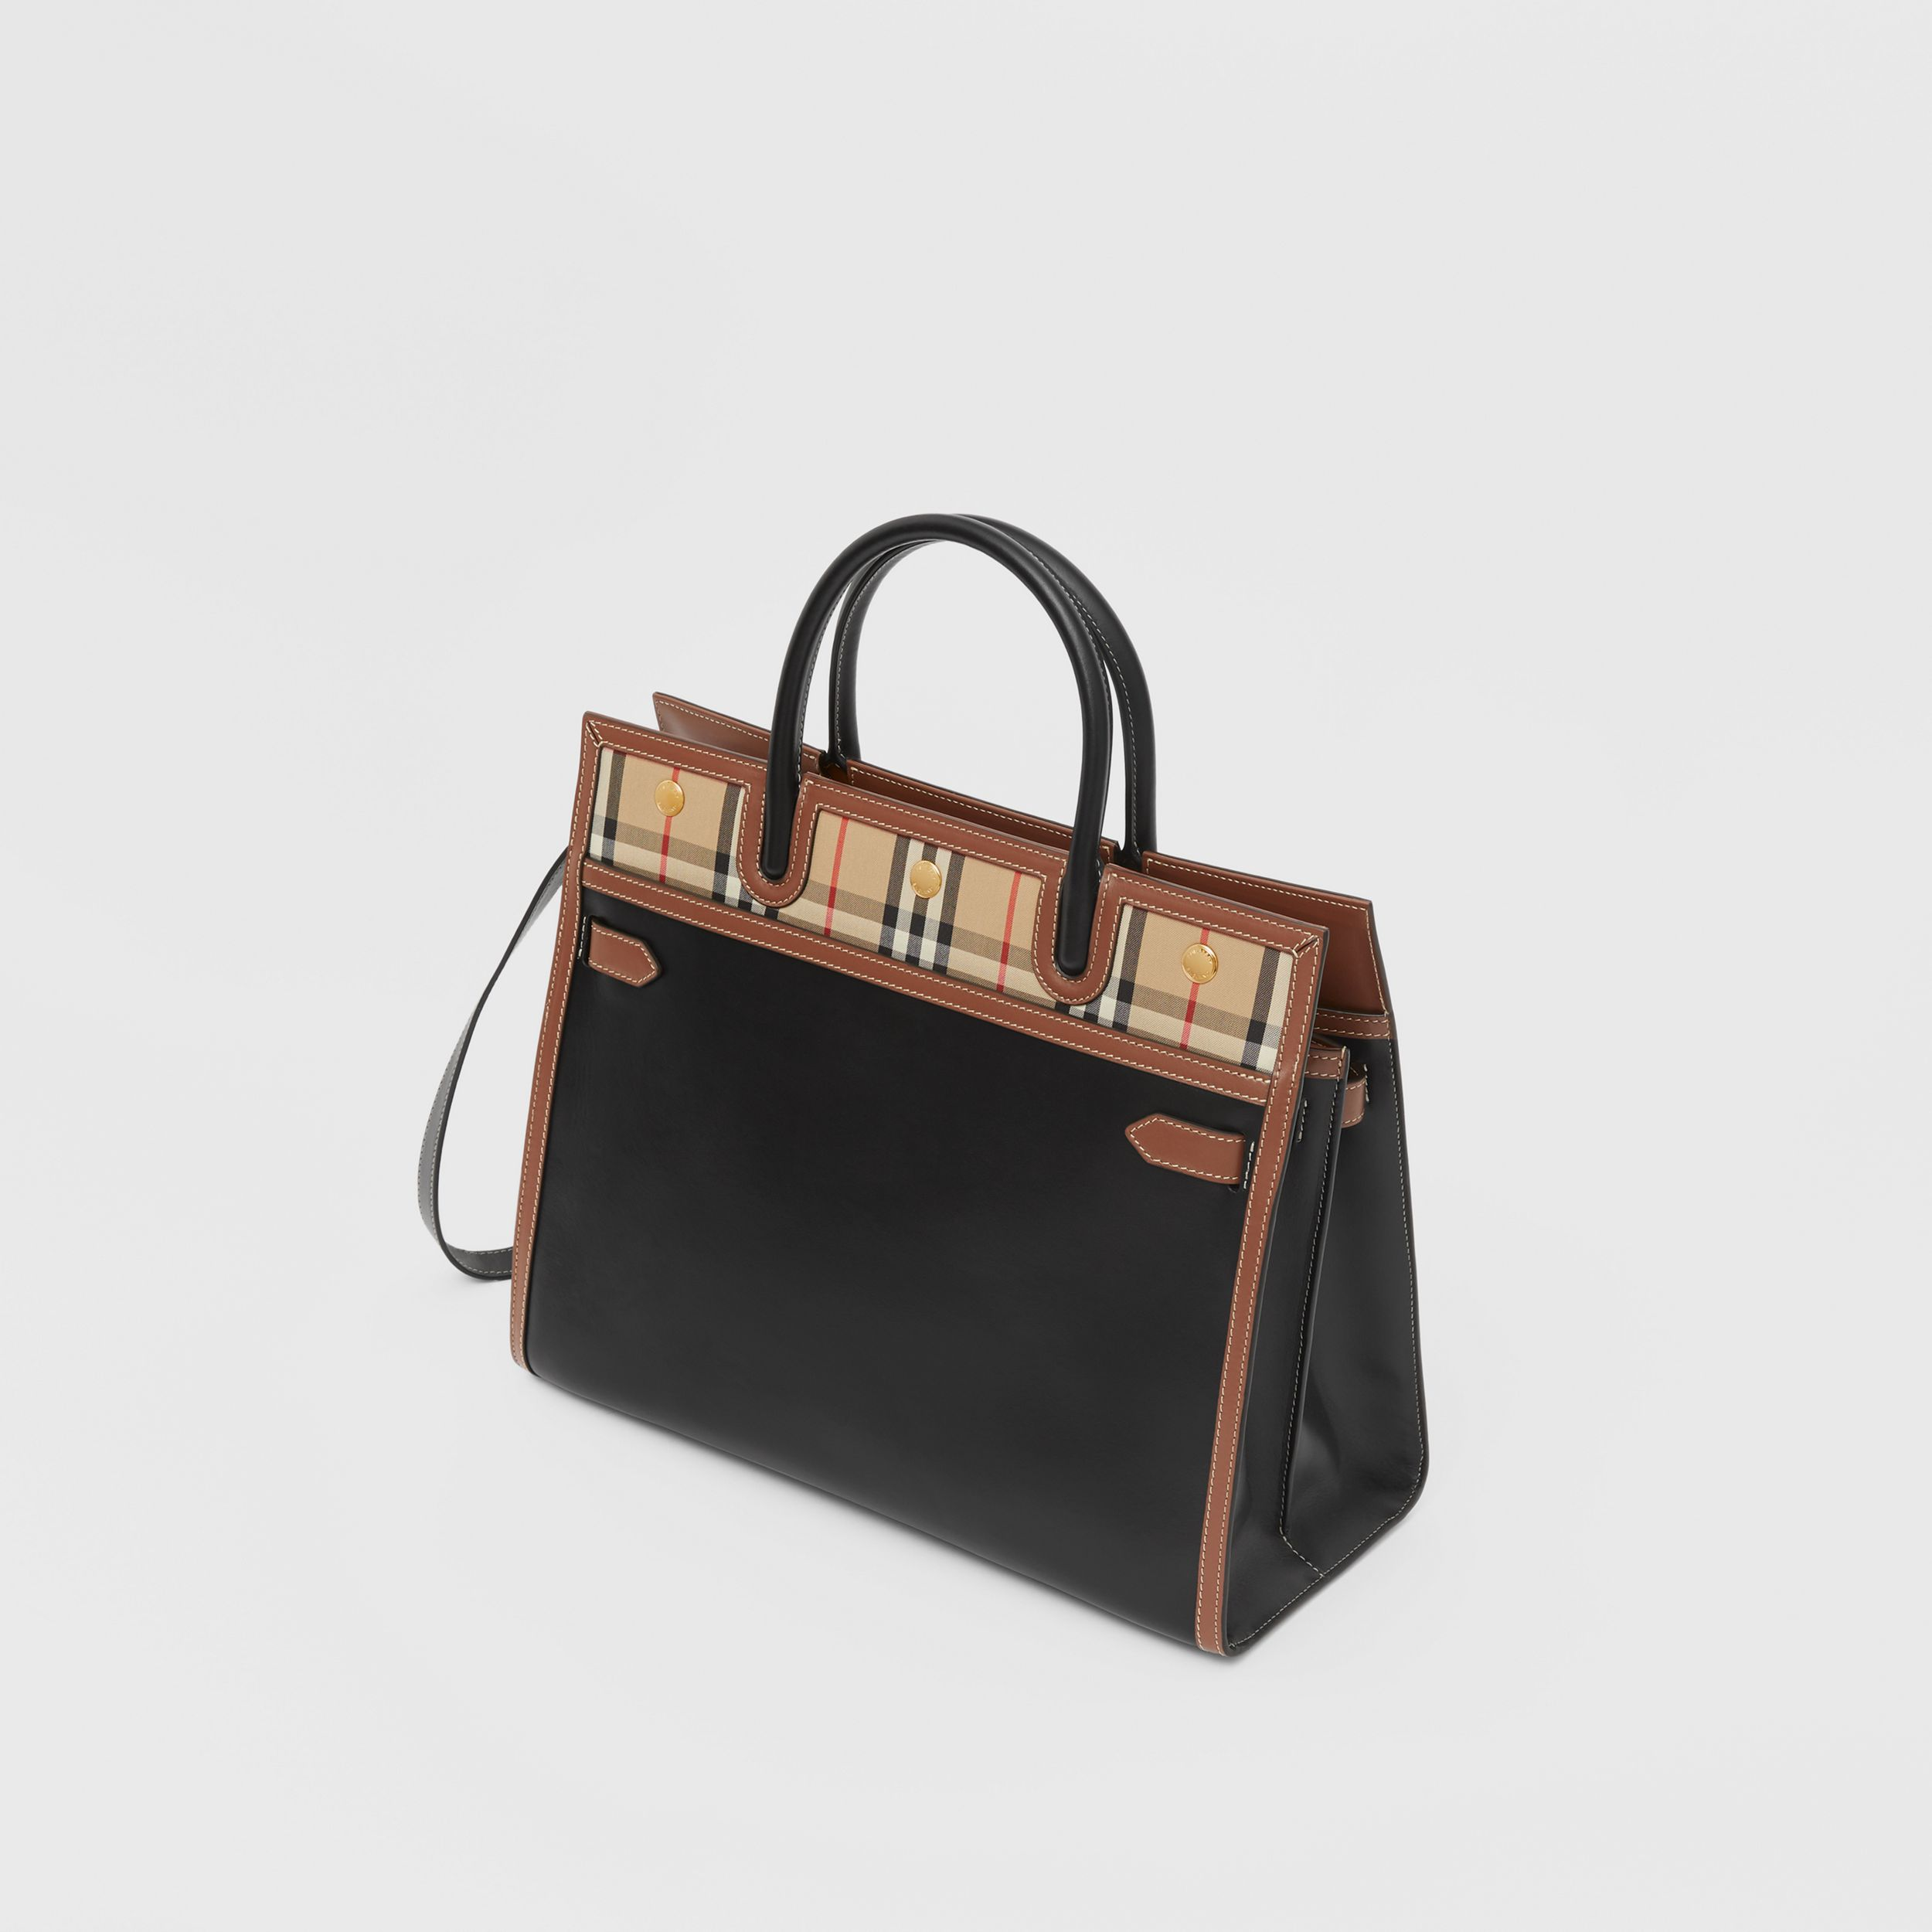 Small Leather and Vintage Check Two-handle Title Bag in Black - Women | Burberry - 4